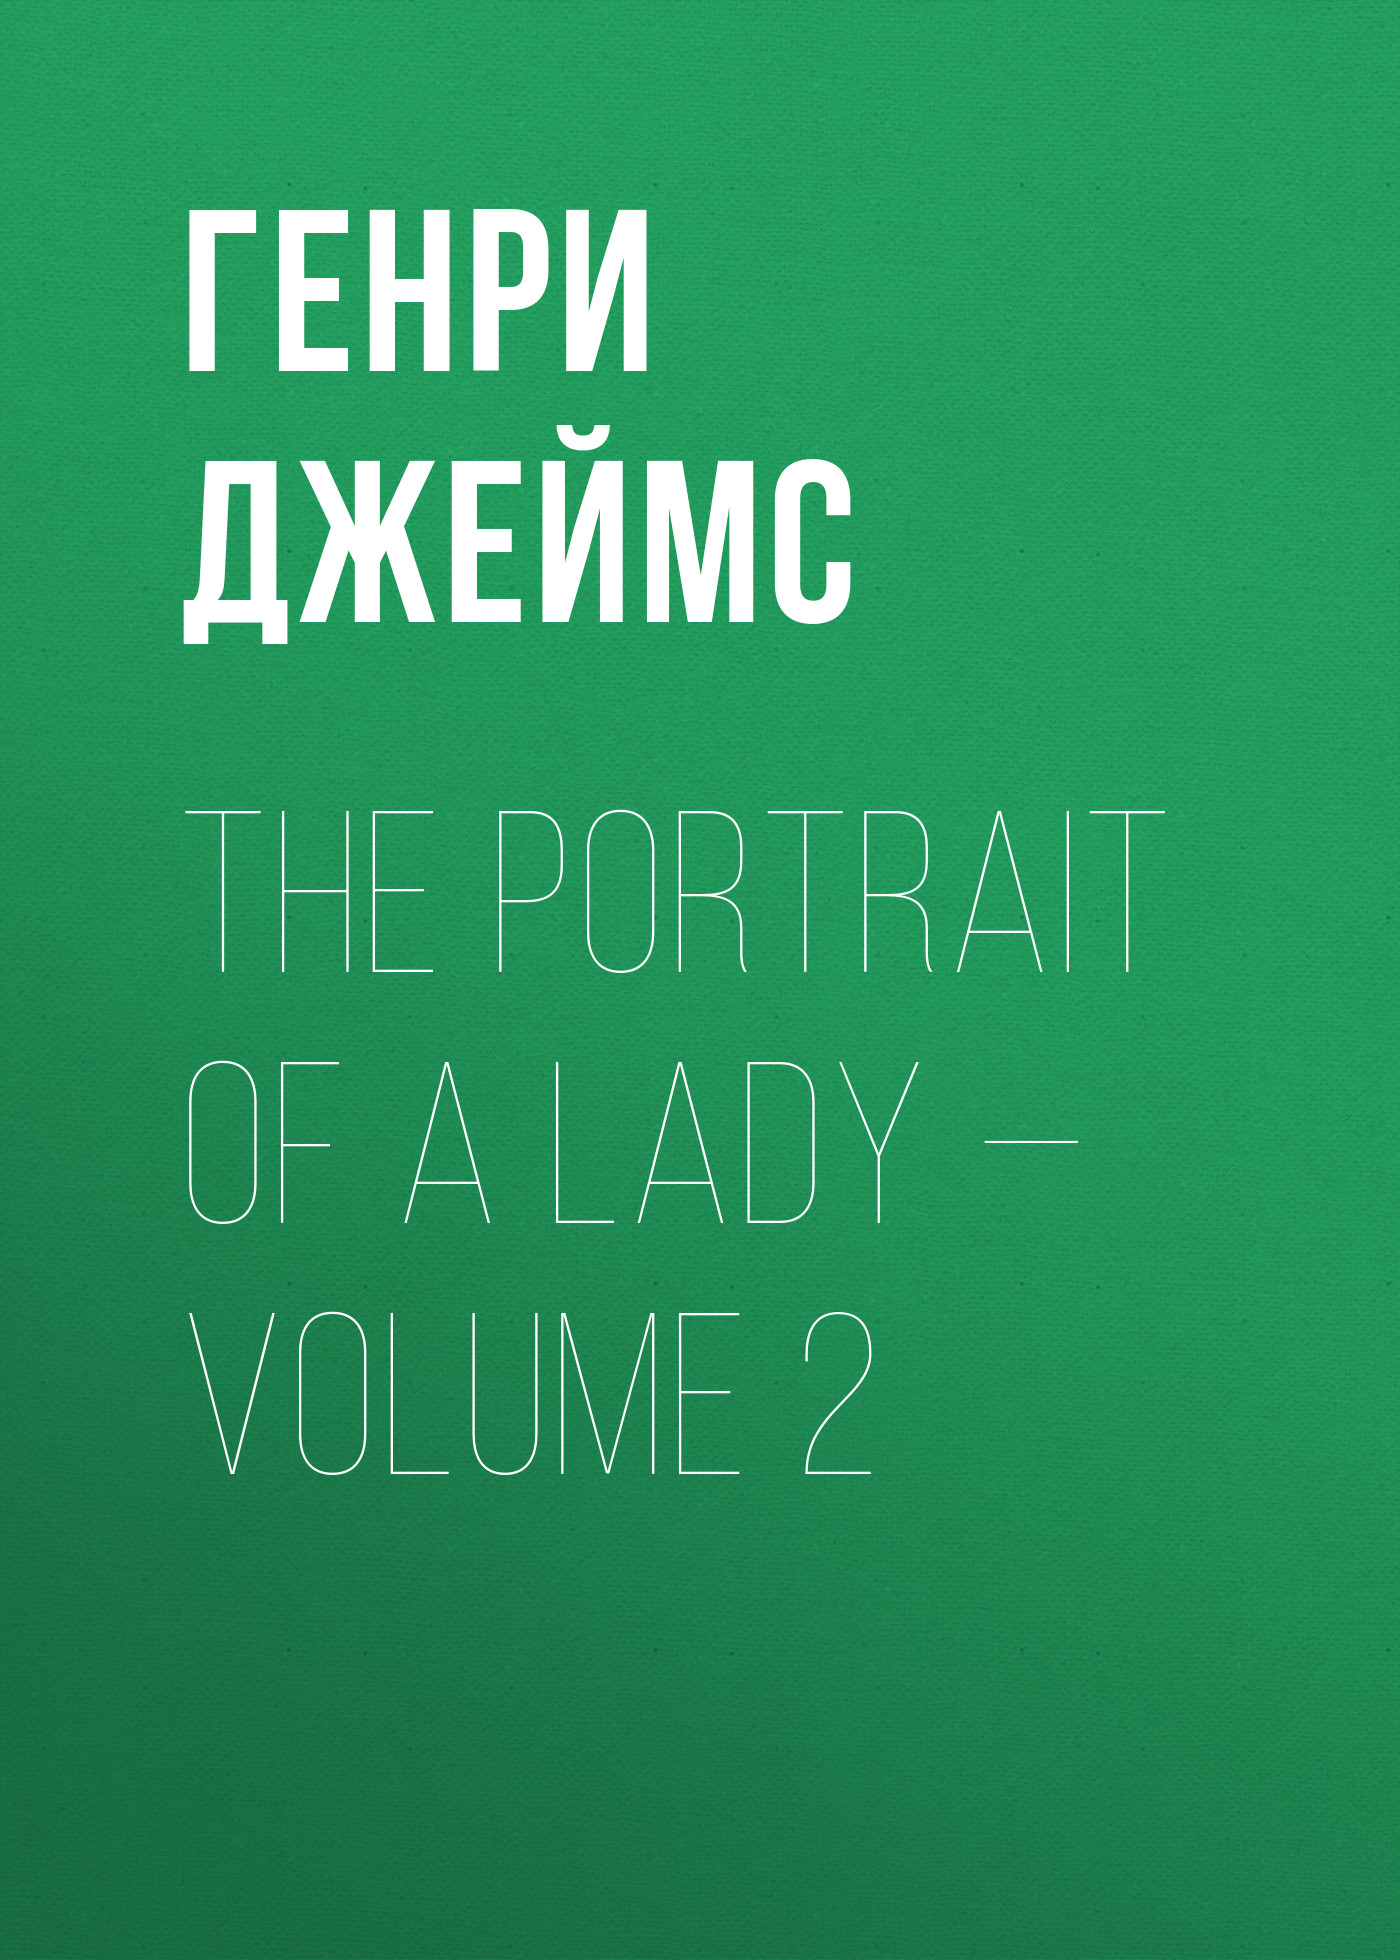 Генри Джеймс The Portrait of a Lady — Volume 2 цена 2017